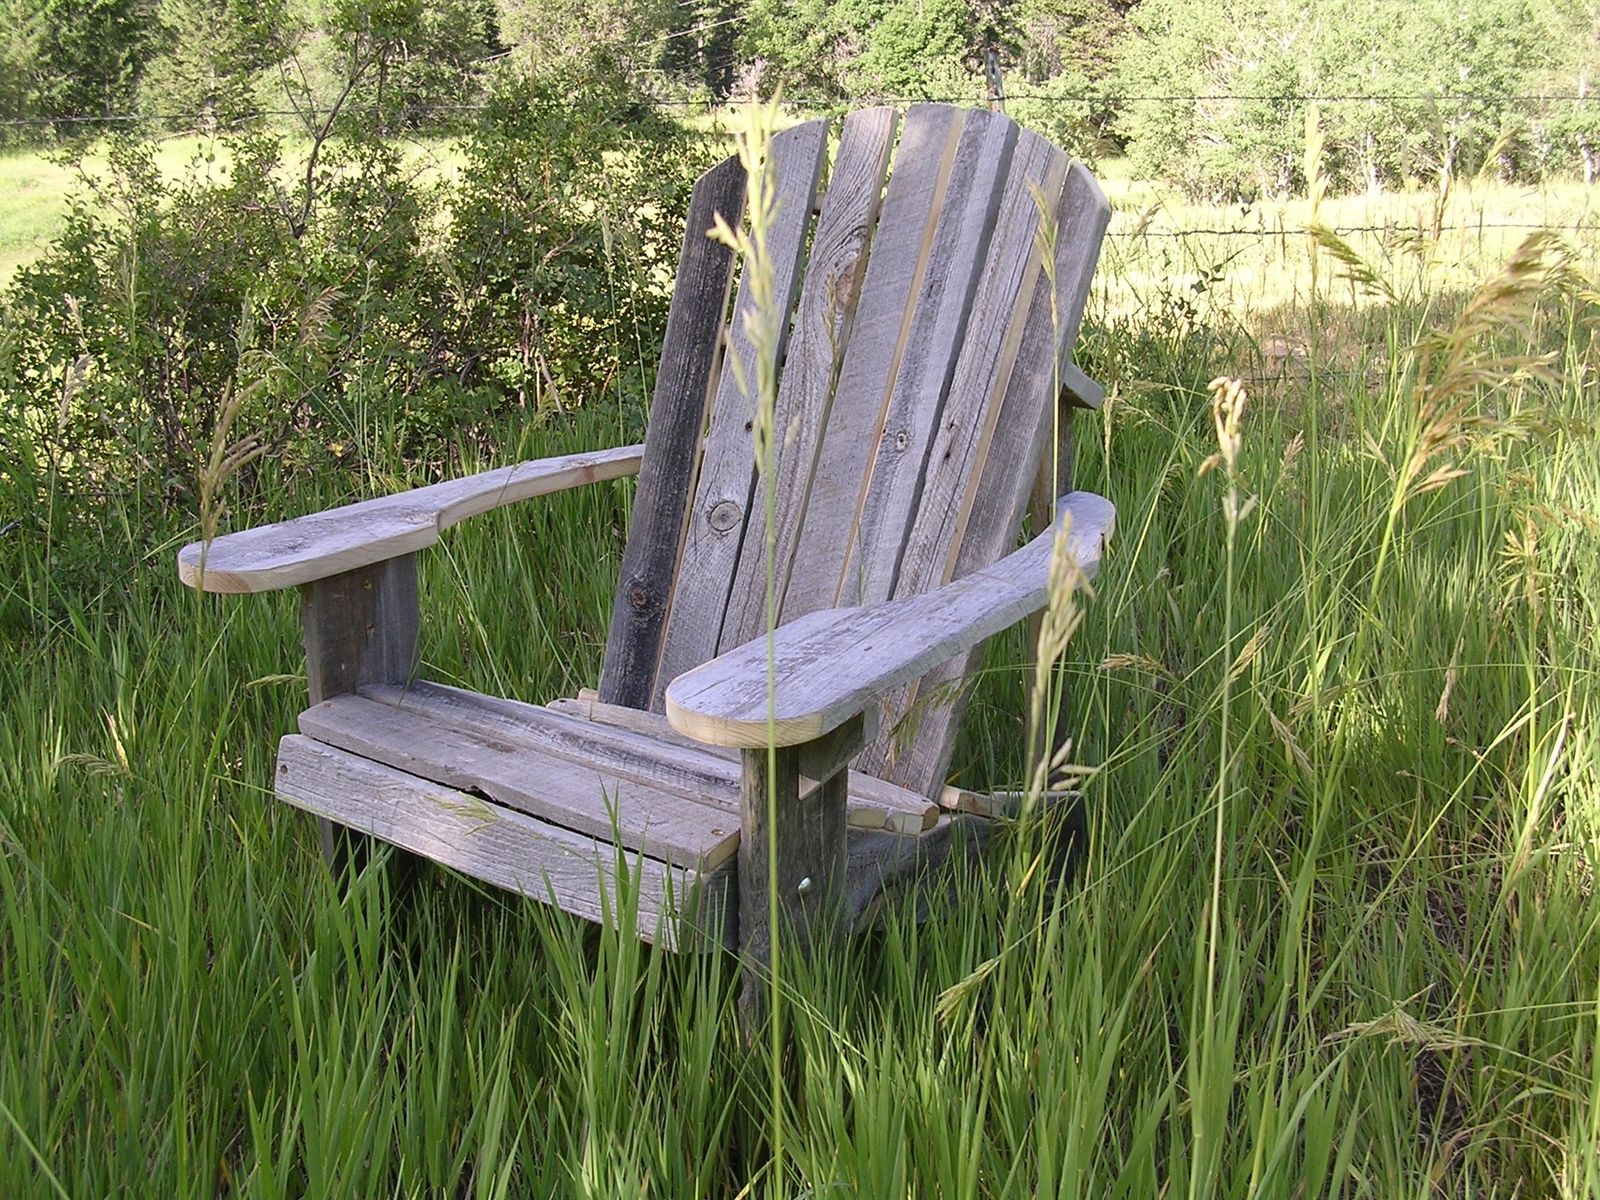 Hand Made Adirondack Chair Rustic Barn Wood Furniture by Garden